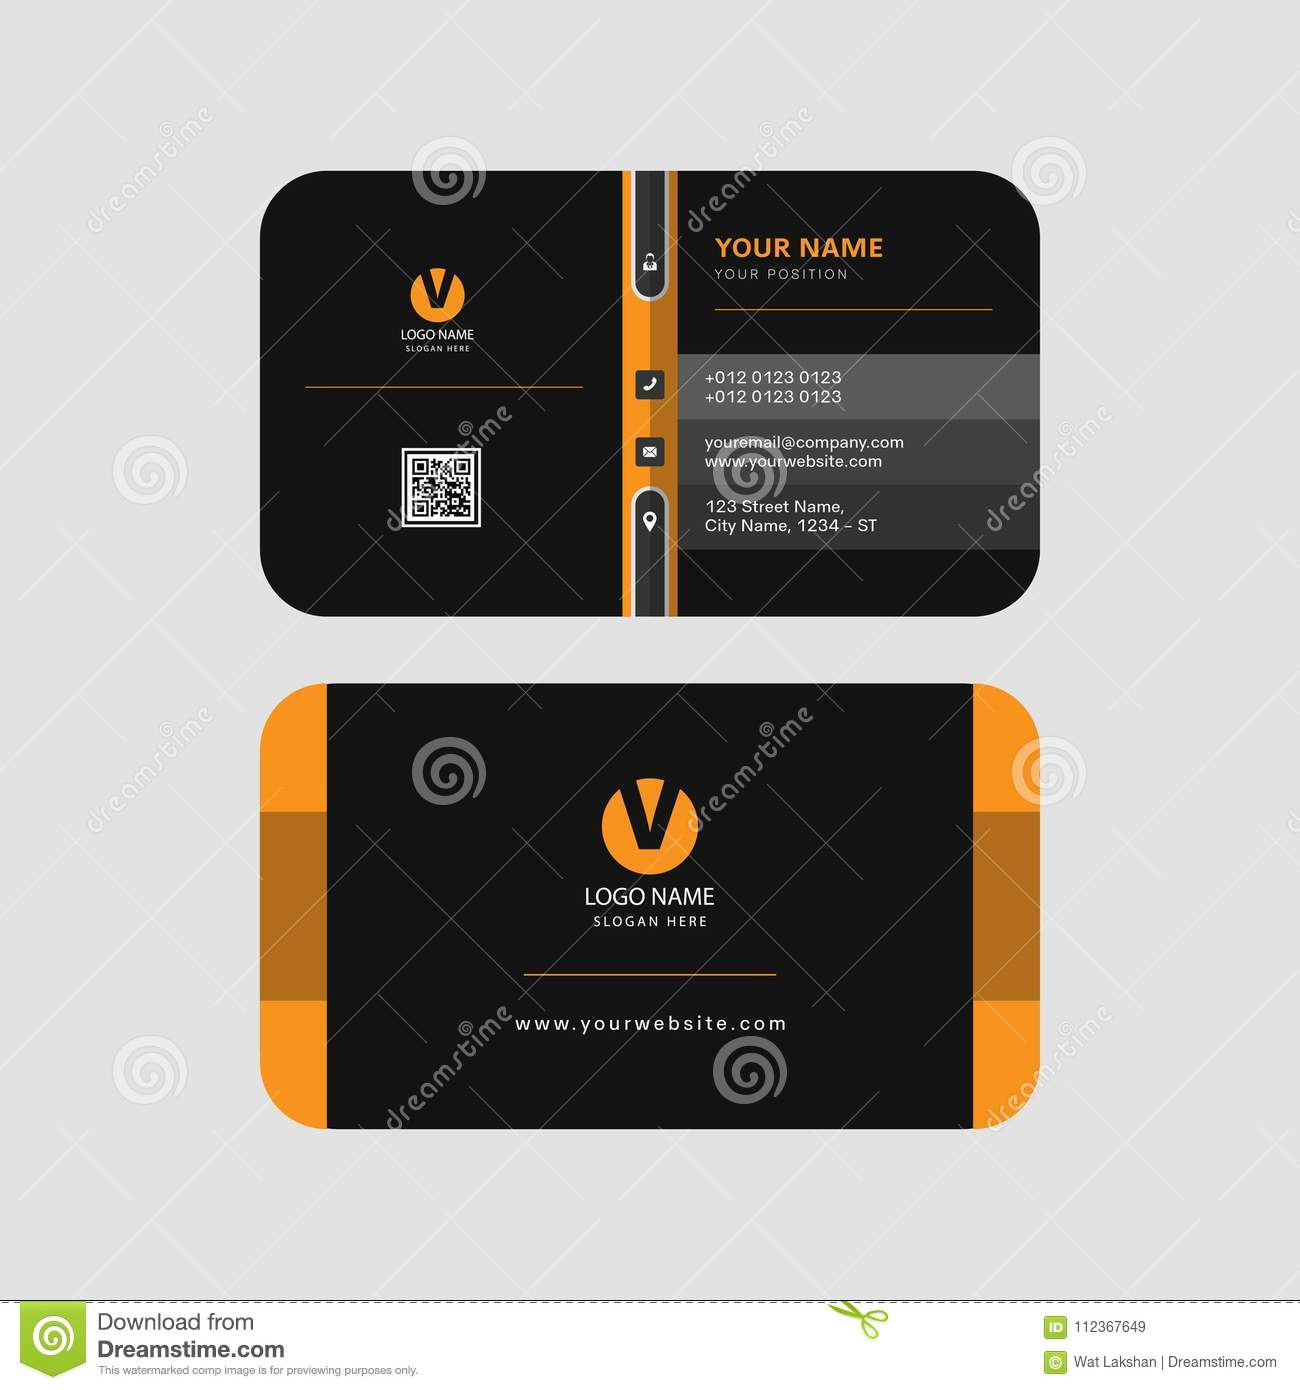 Colorful yellow and black color modern professional business card download colorful yellow and black color modern professional business card template invitation card creation stock vector accmission Gallery